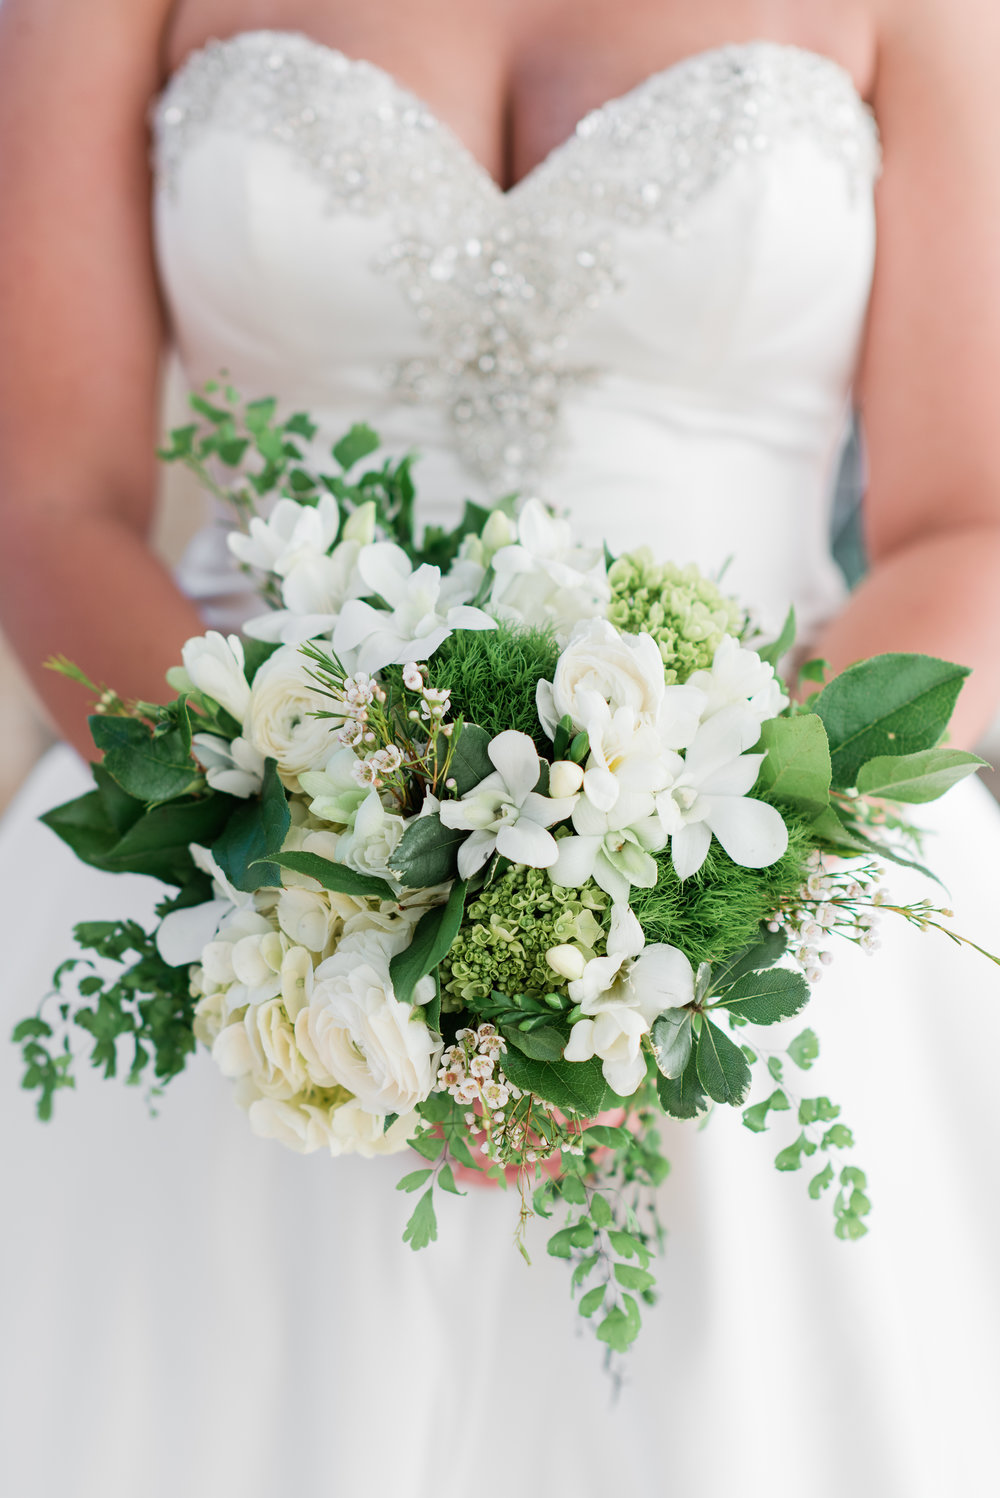 White bridal bouquet with lots of greenery - A Black Tie, South Carolina Commerce Club Wedding